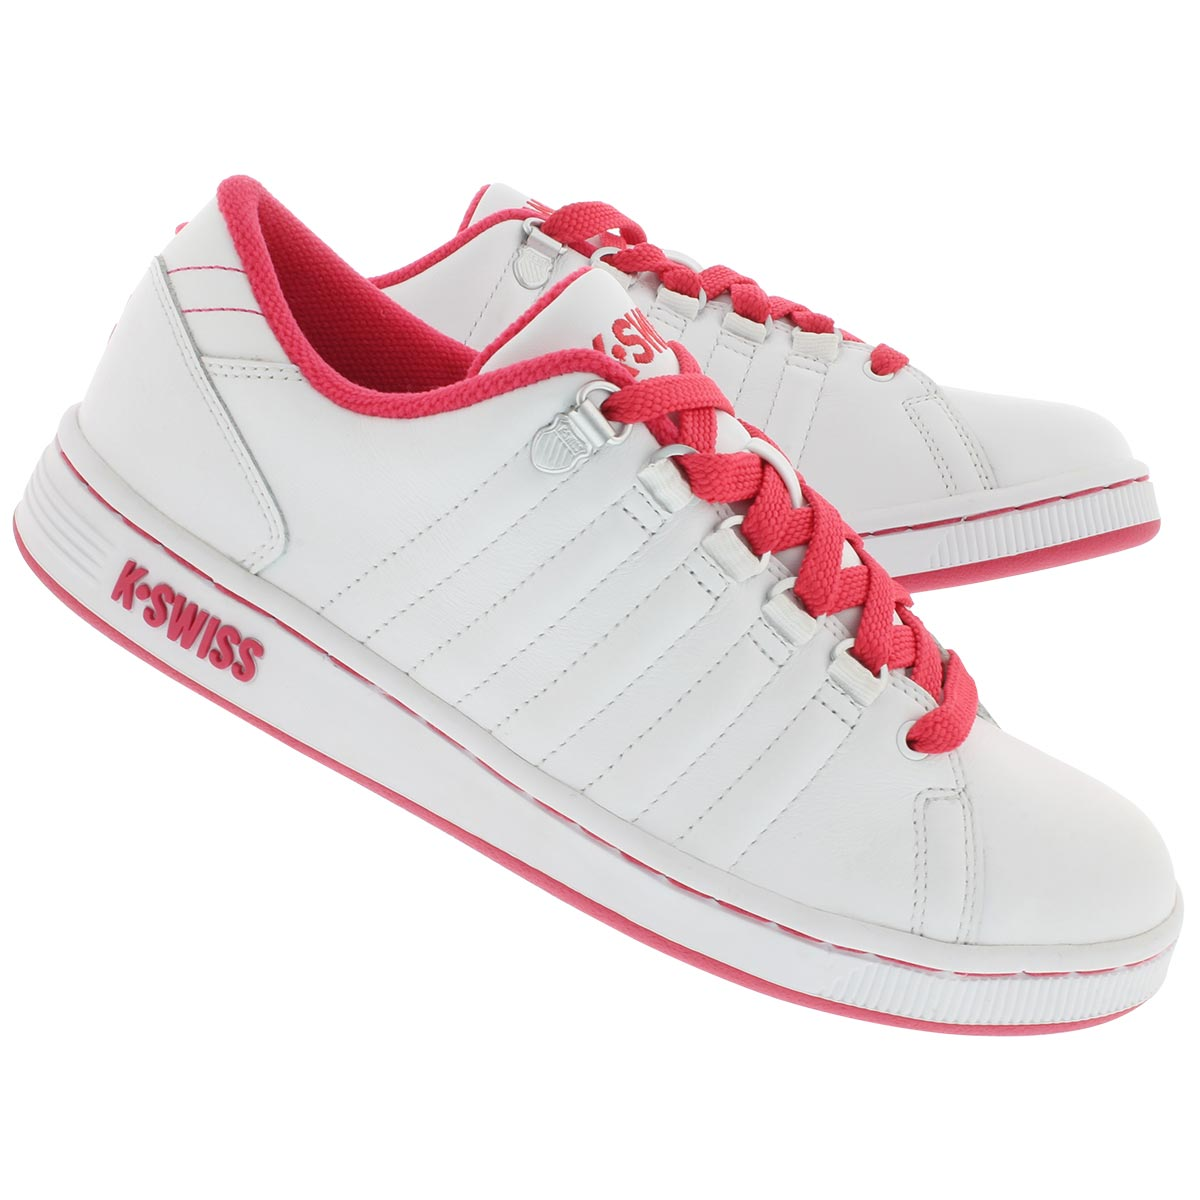 Lds Lozan white/pink lace up sneaker